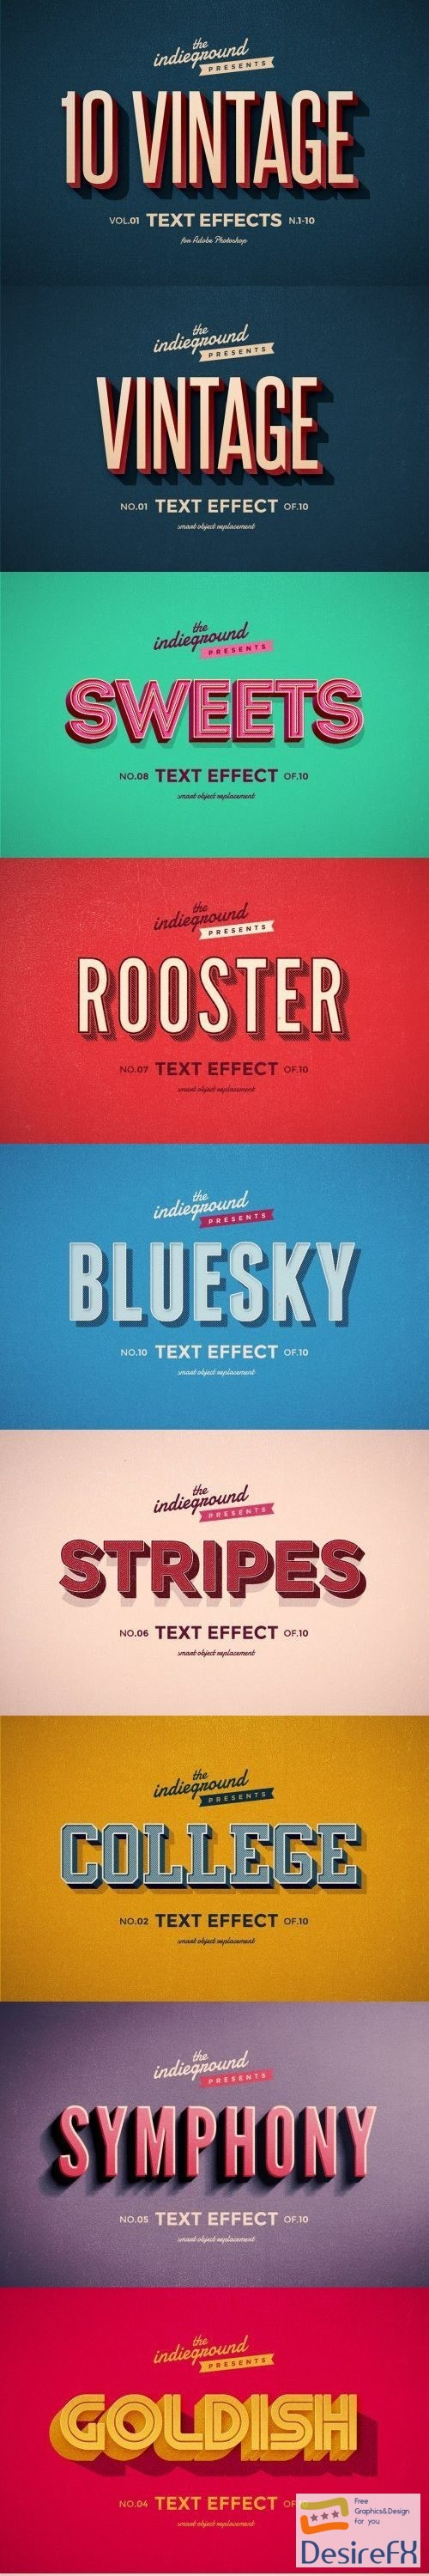 layered-psd - CM - Retro Text Effects Vol.1 - 3903974